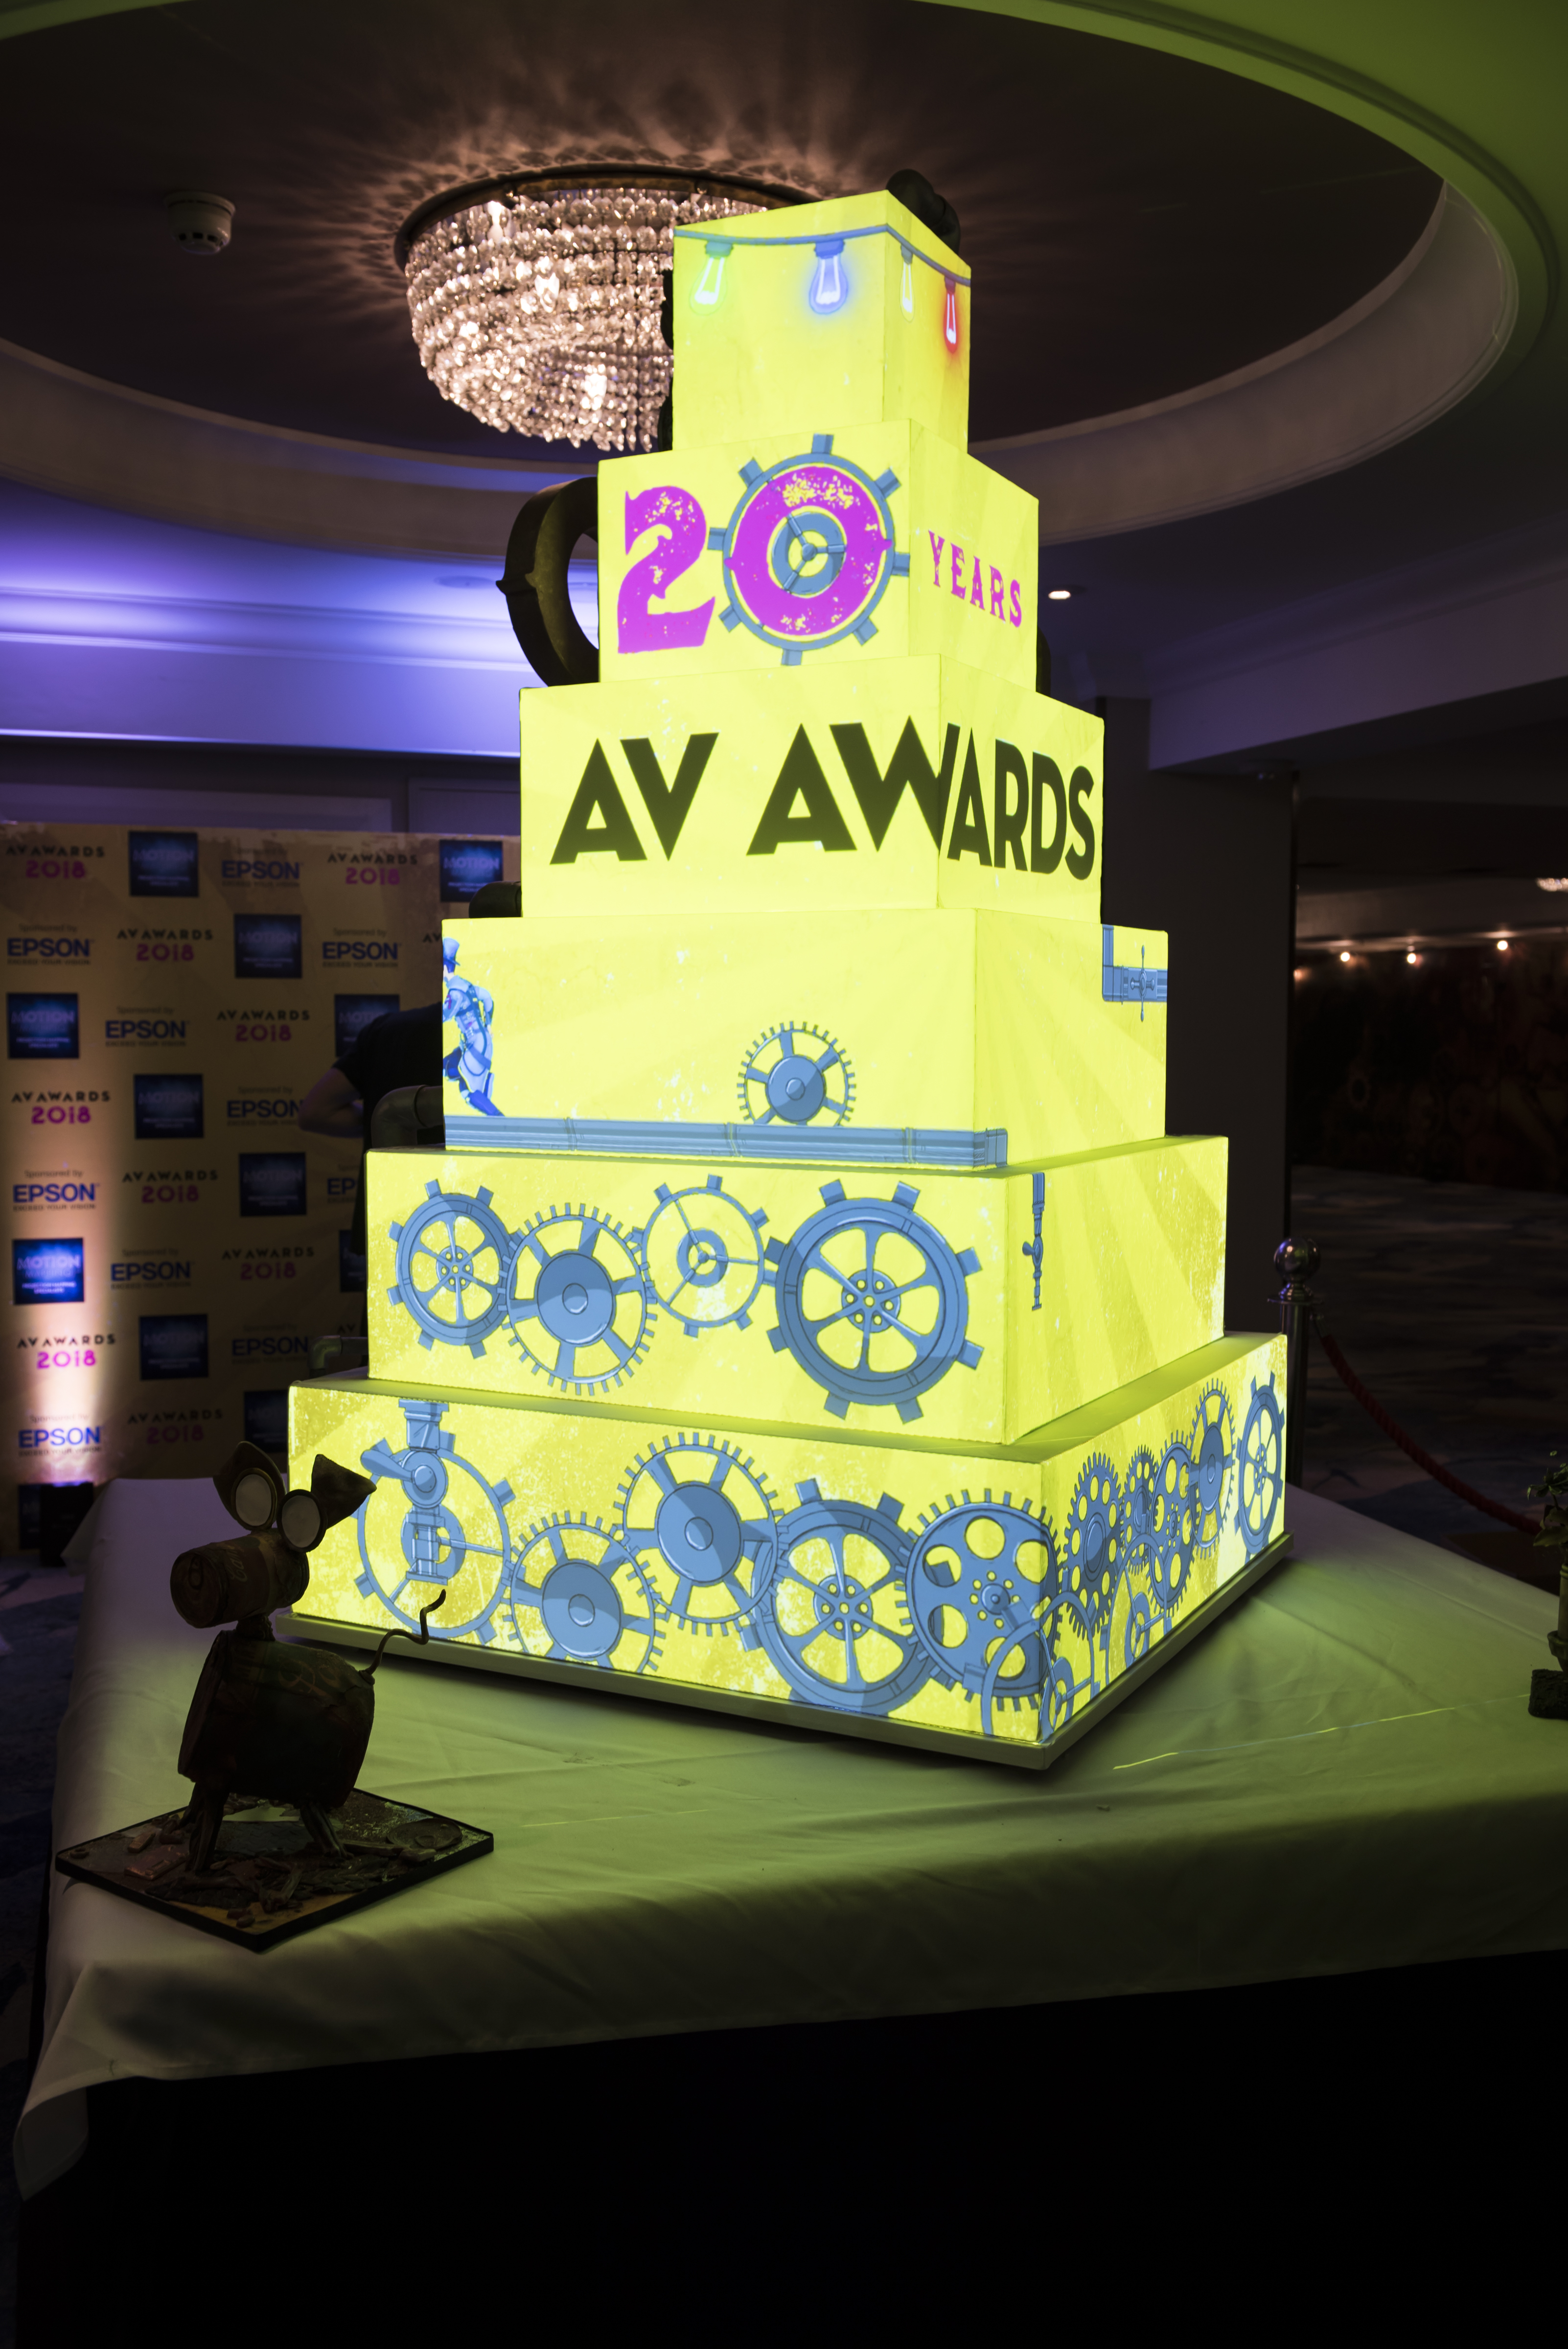 The magic behind the AV Awards projection mapped cake